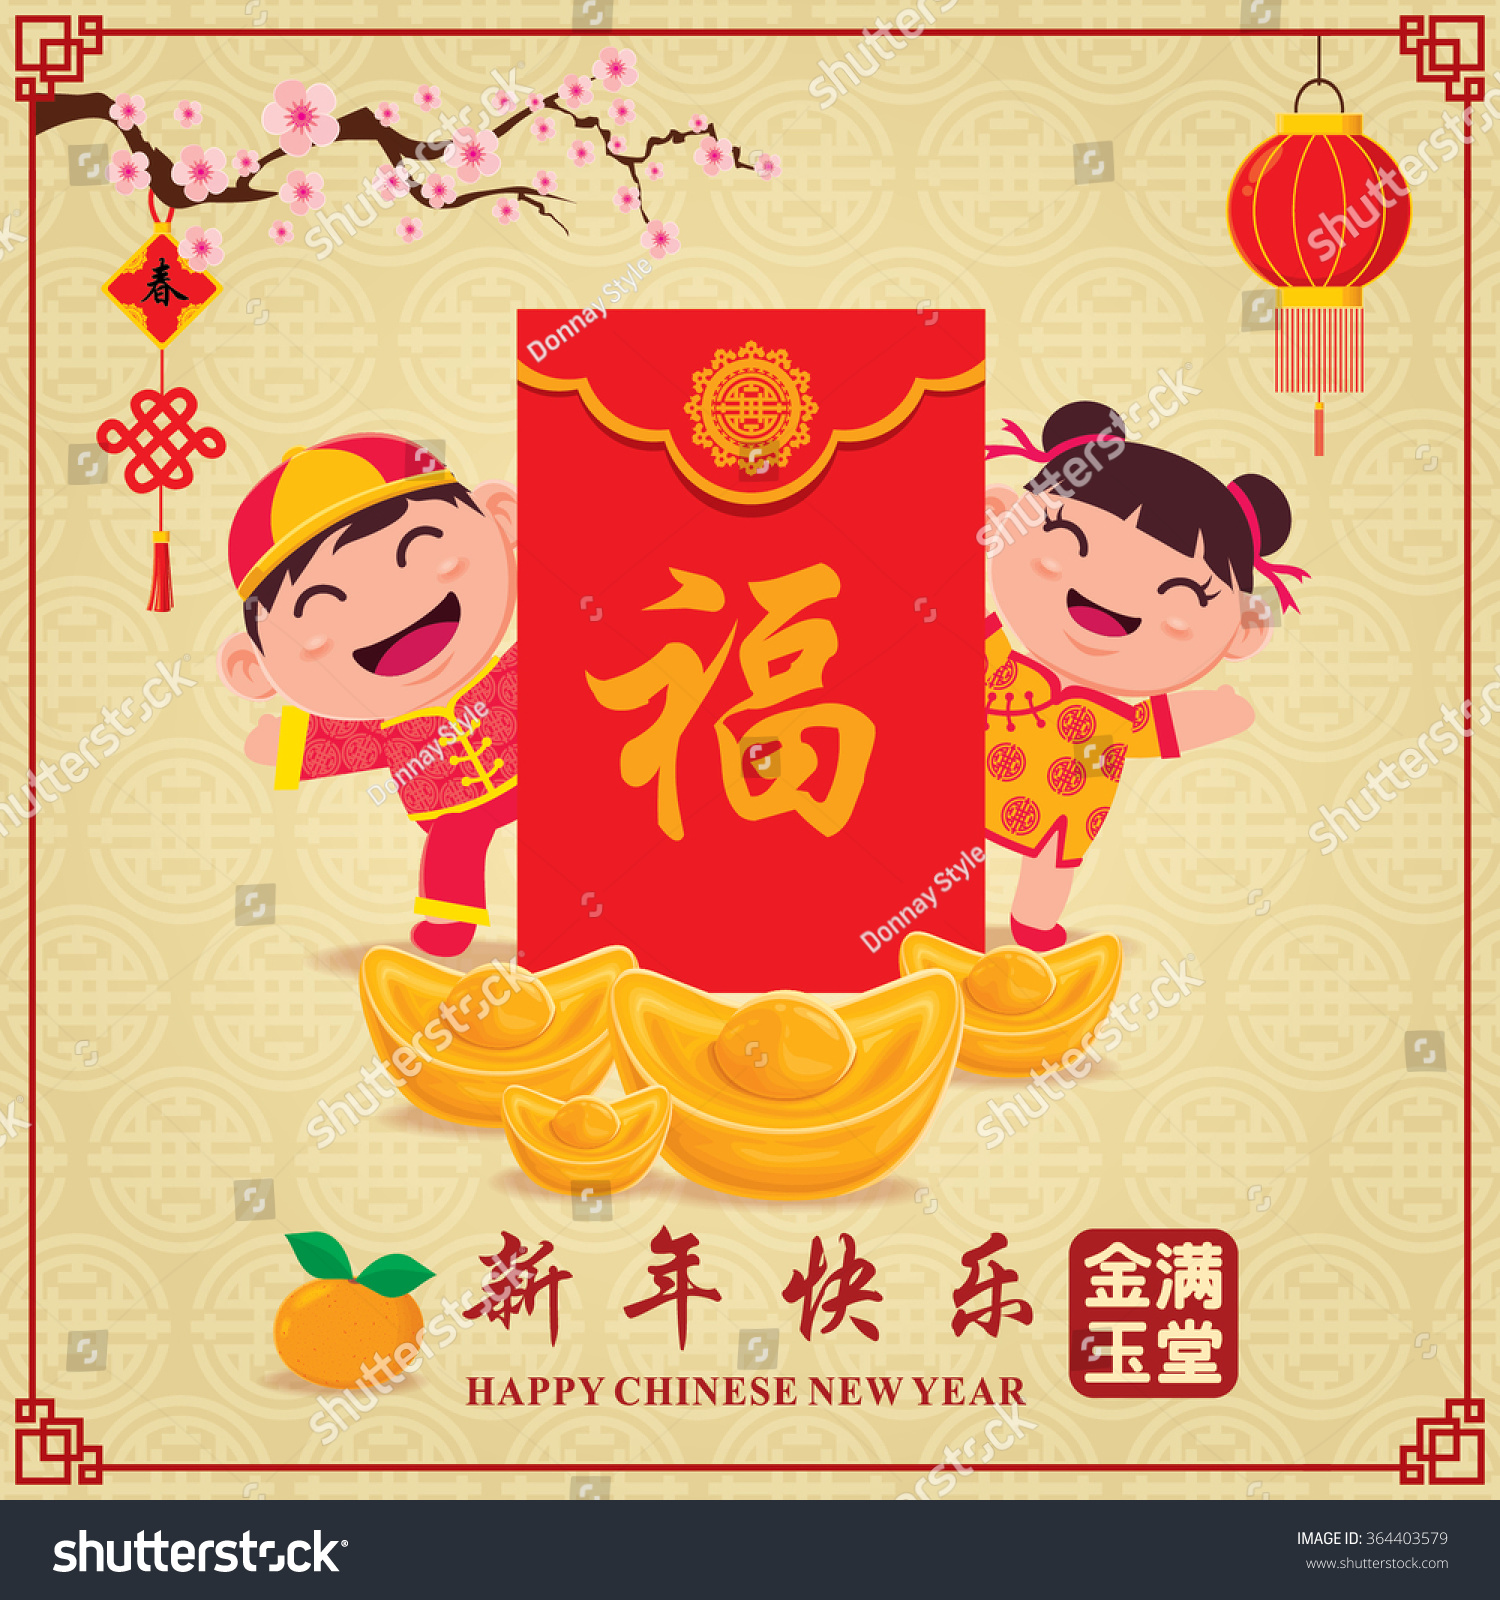 Vintage Chinese Calendar : Royalty free vintage chinese new year poster design